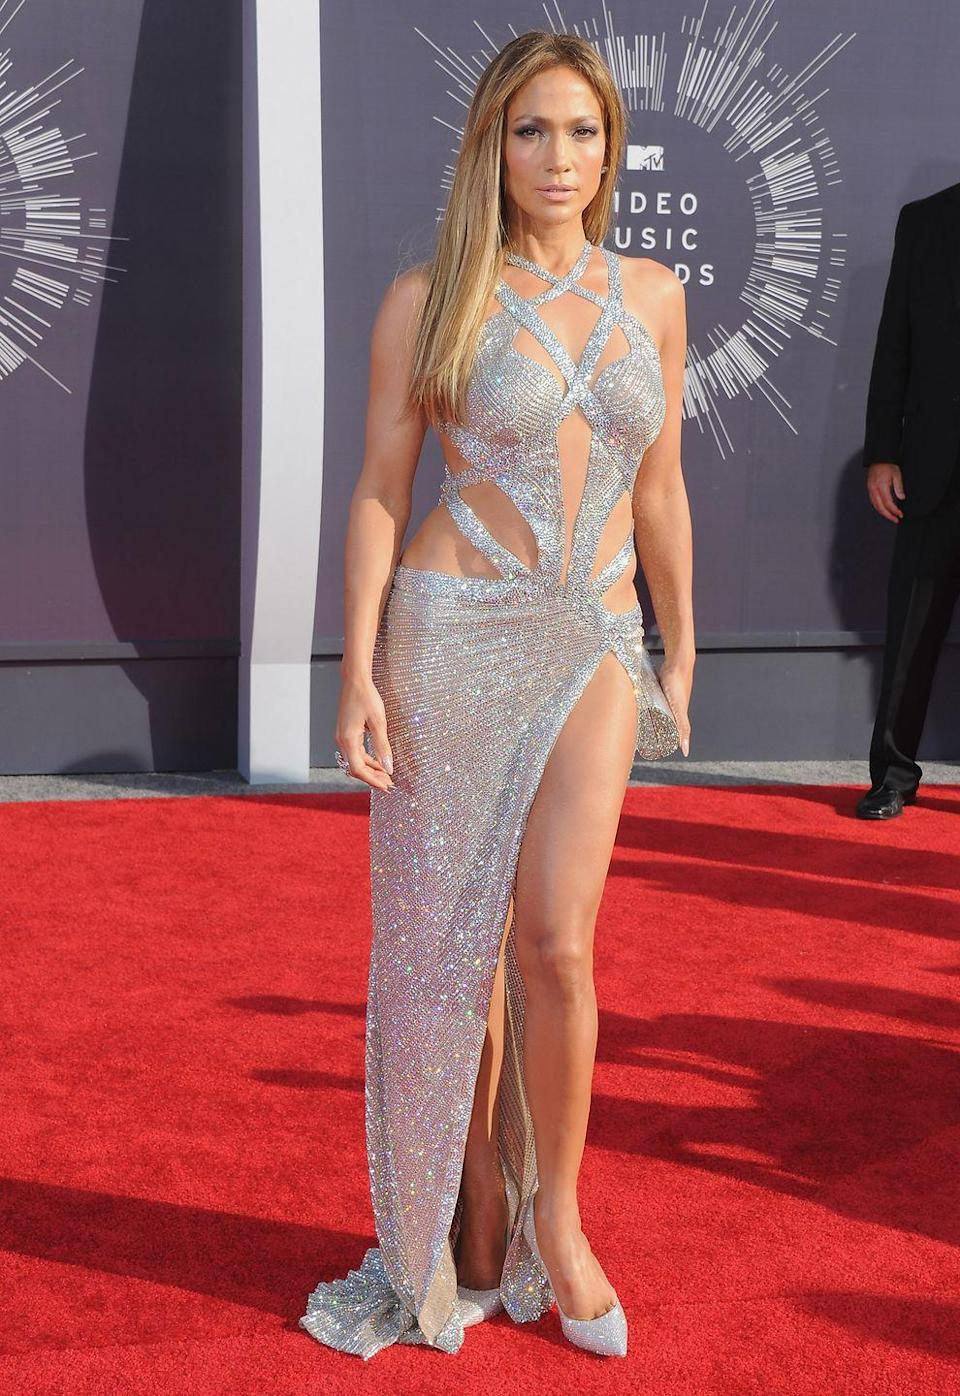 <p><strong>When: </strong>August 2014</p><p><strong>Where:</strong> MTV Video Music Awards</p><p><strong>Wearing: </strong>Charbel Zoe</p>